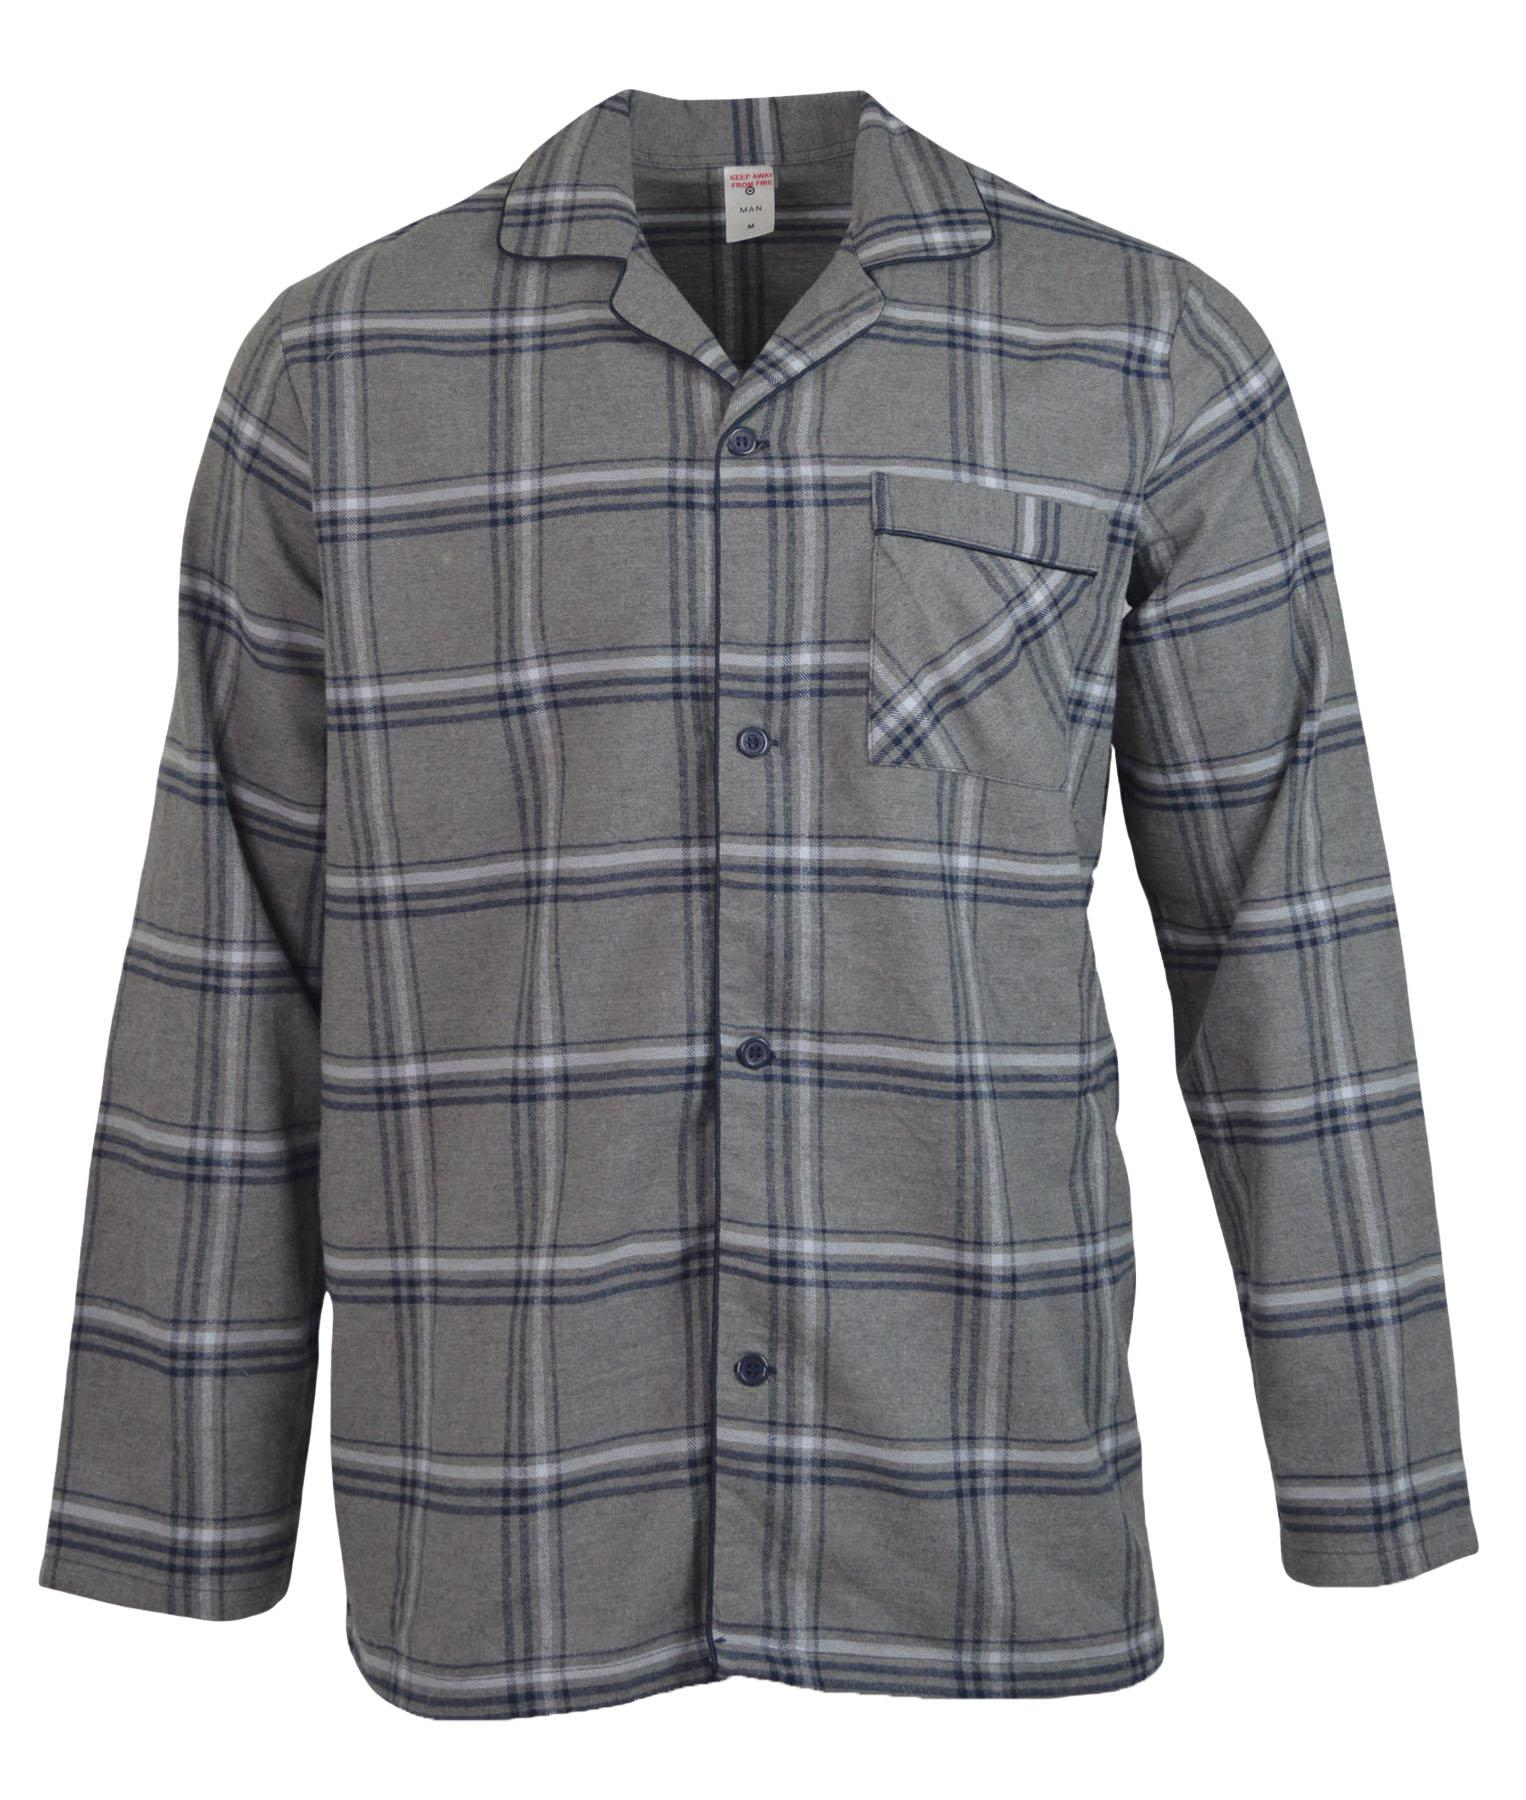 NEW-Mens-Brushed-Pure-Cotton-Check-Pyjamas-Flannelette-PJ-Set-in-Blue-Red-Grey thumbnail 10